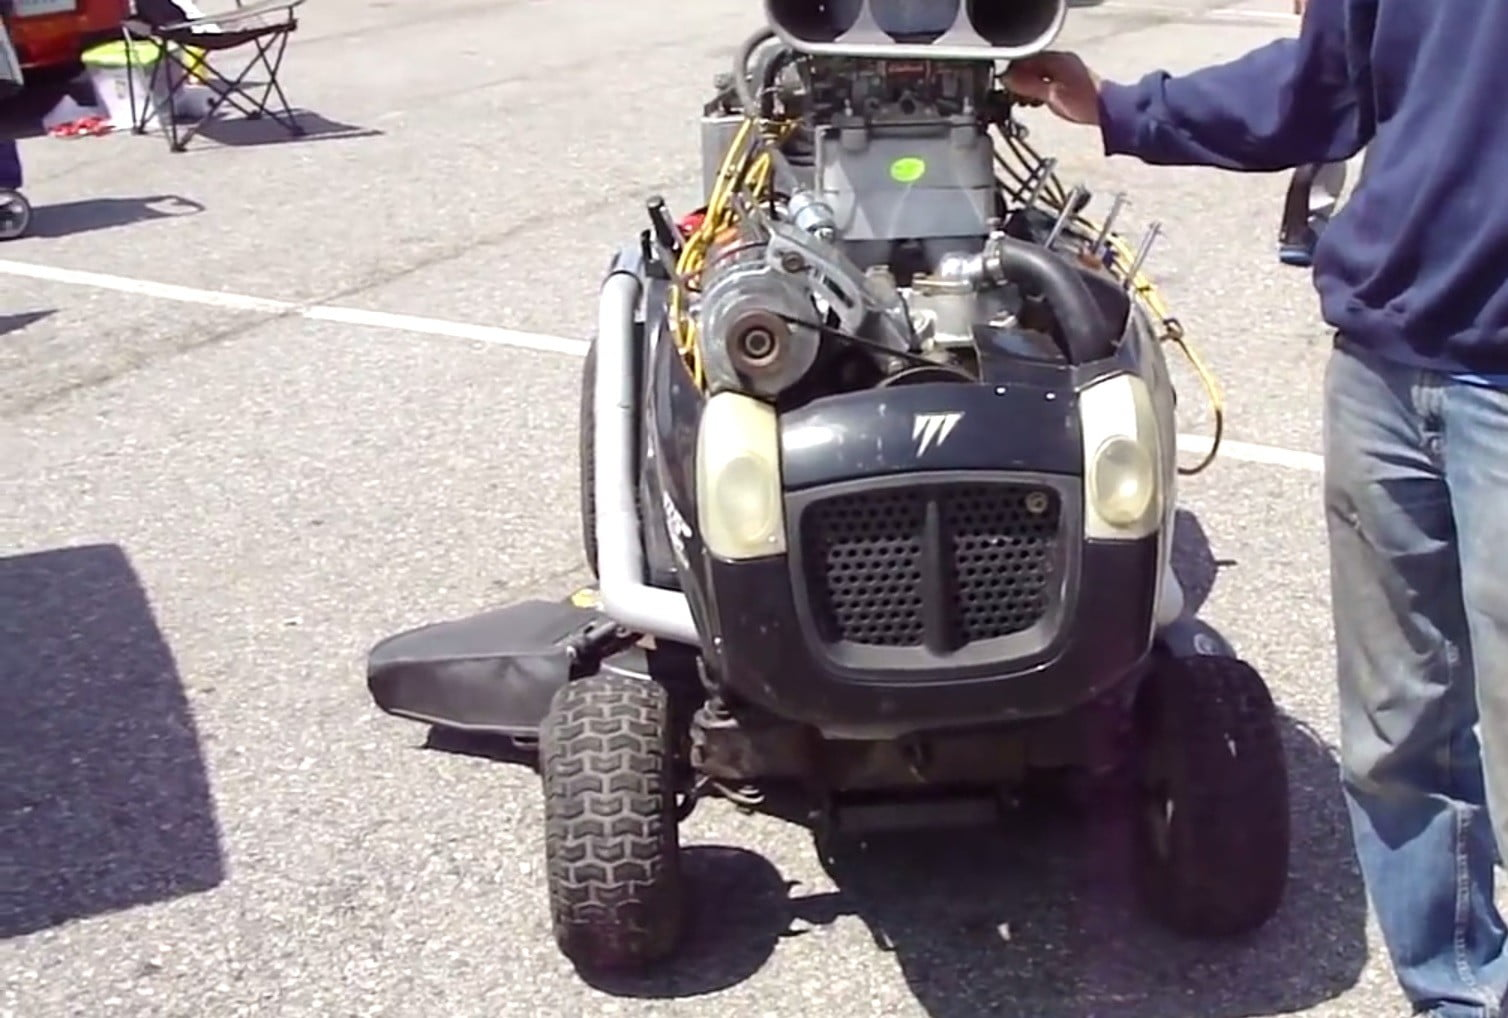 Chevrolet Powered Riding Mower Video Specs Features Digital Trends